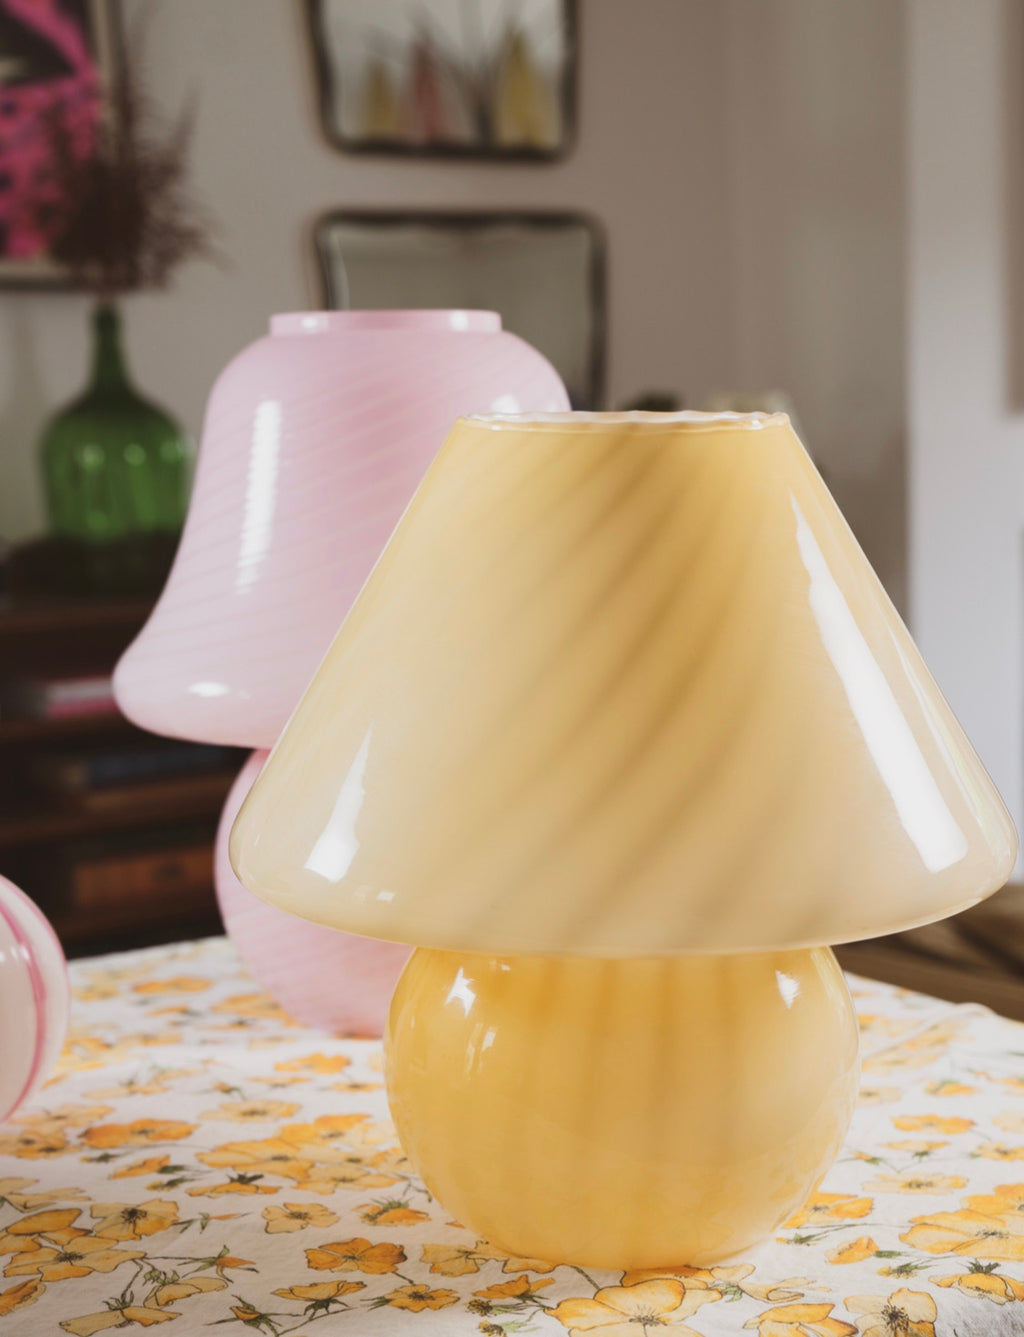 Large 1970s Vintage Yellow Glass Swirl Murano Mushroom Lamp